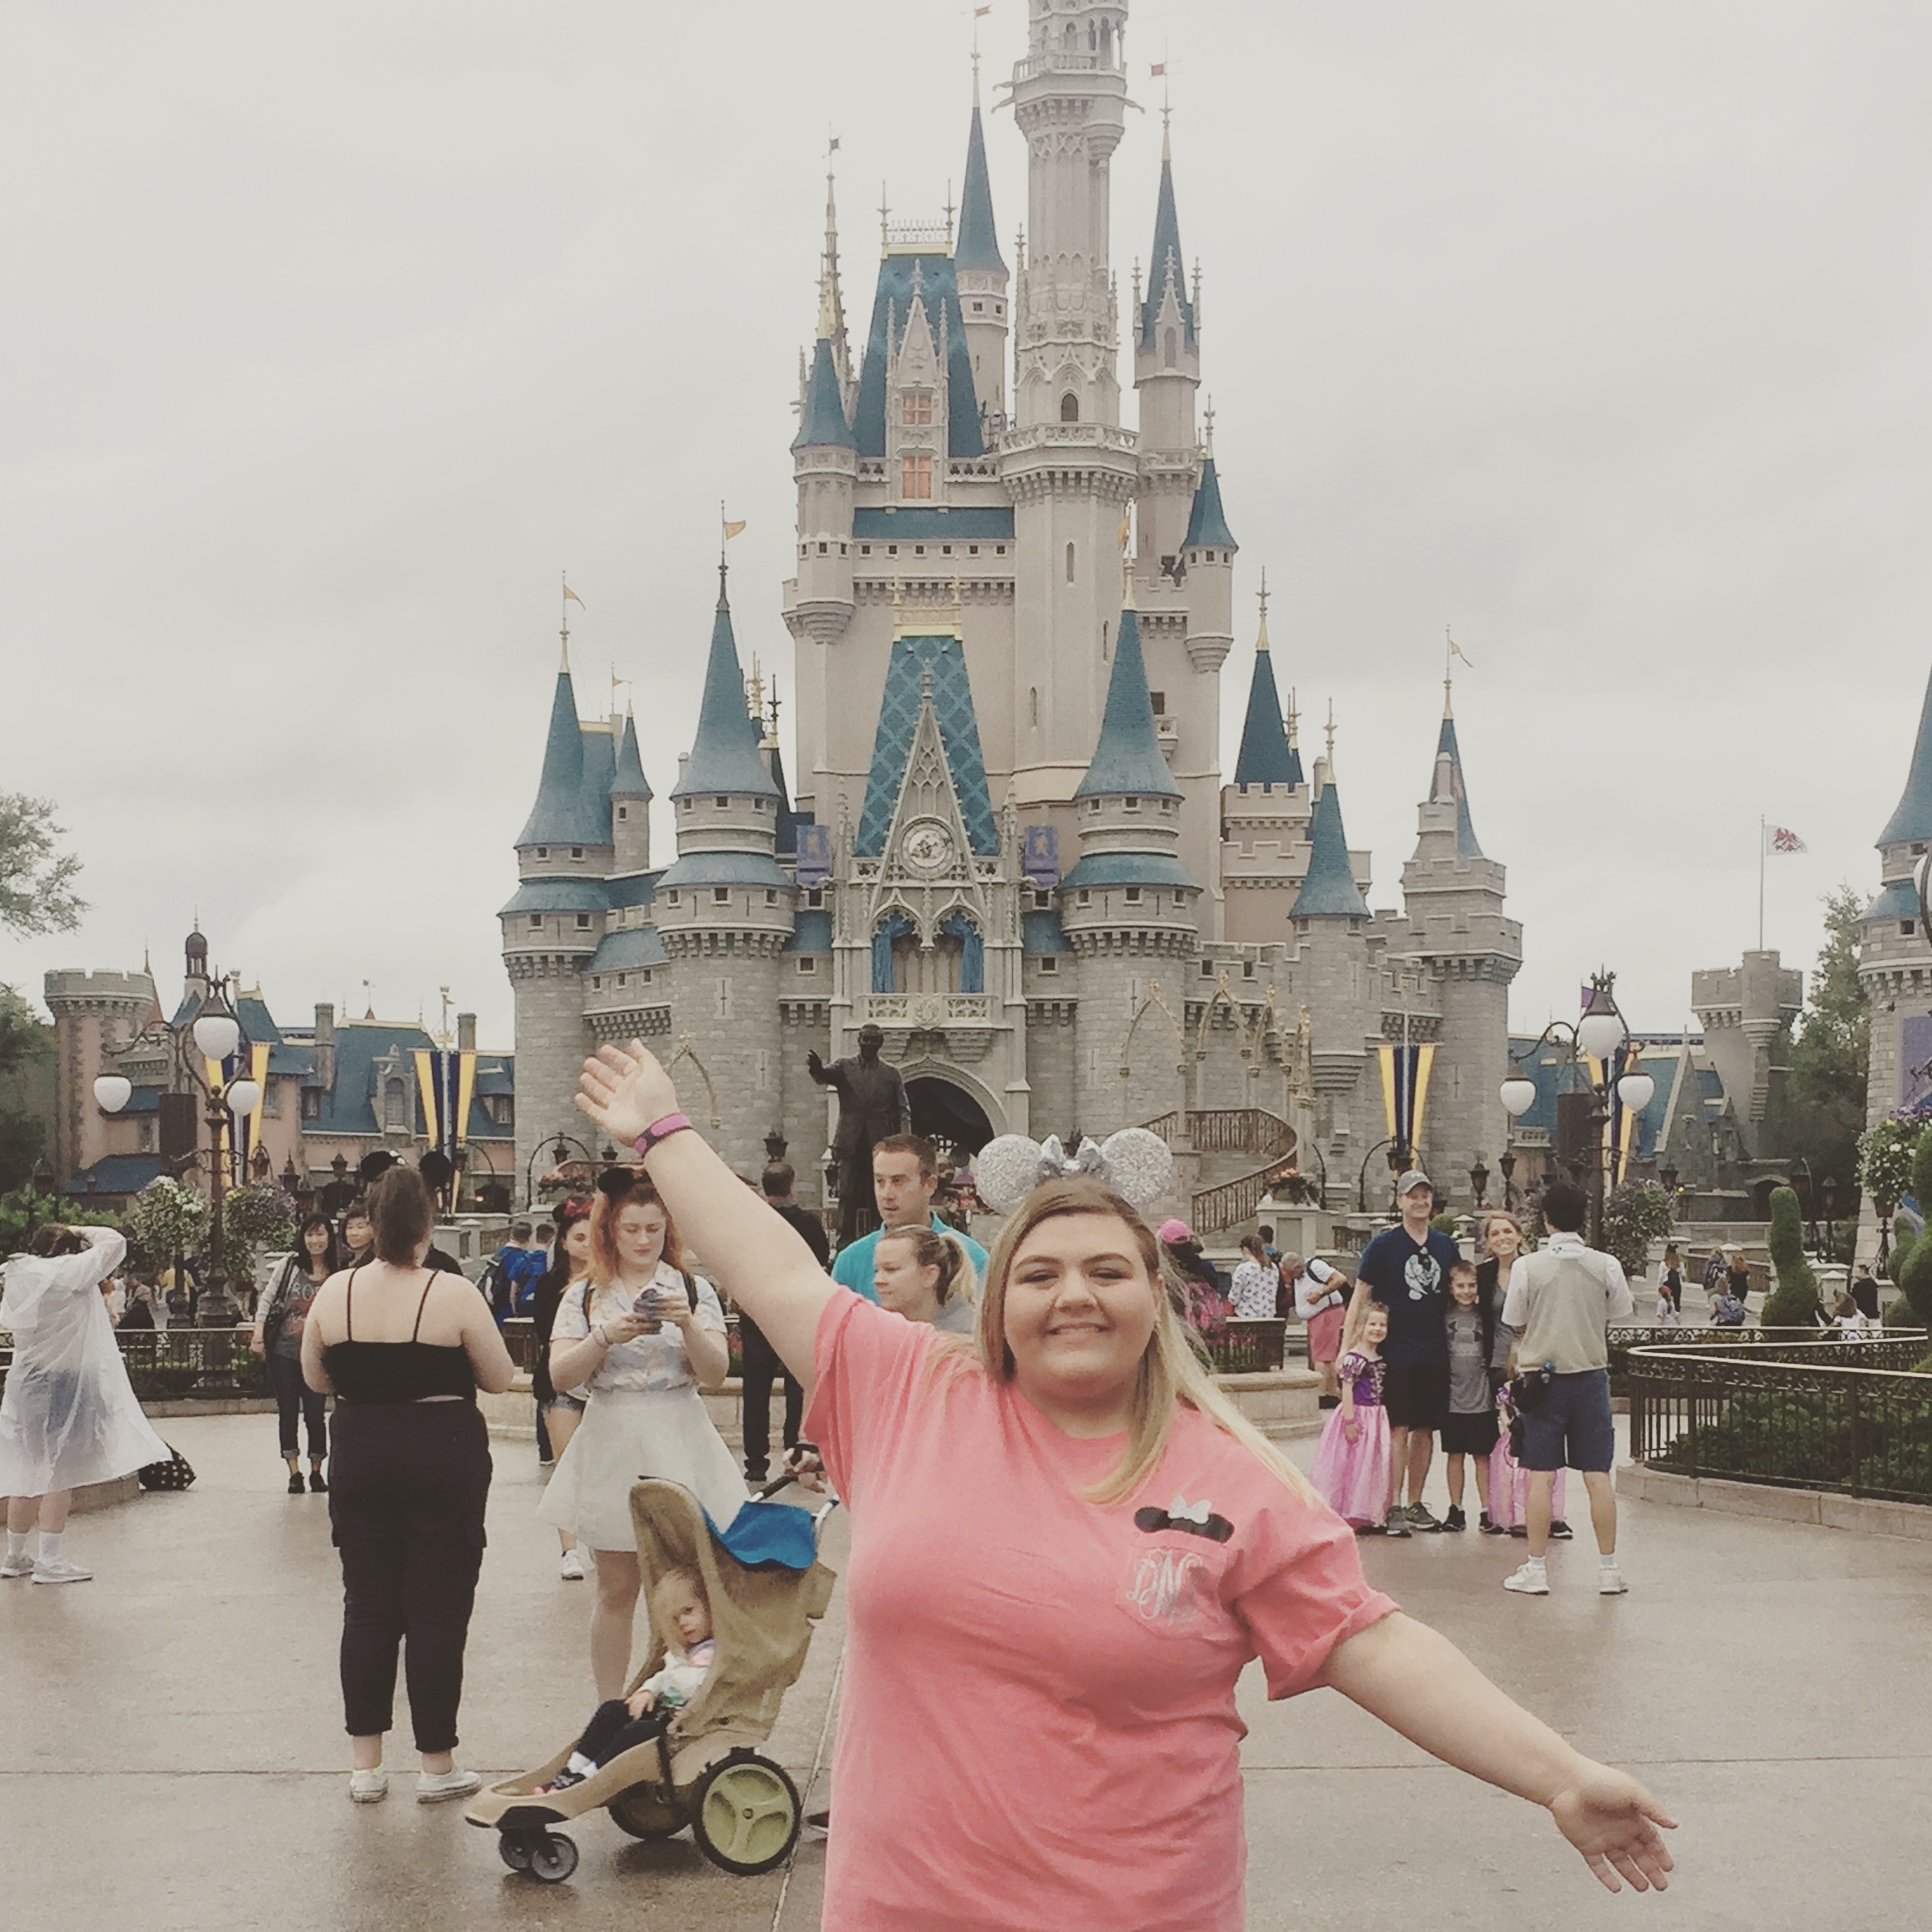 Destiny posting in front of Cinderella's Castle during the Student Activities trip to Disneyworld.